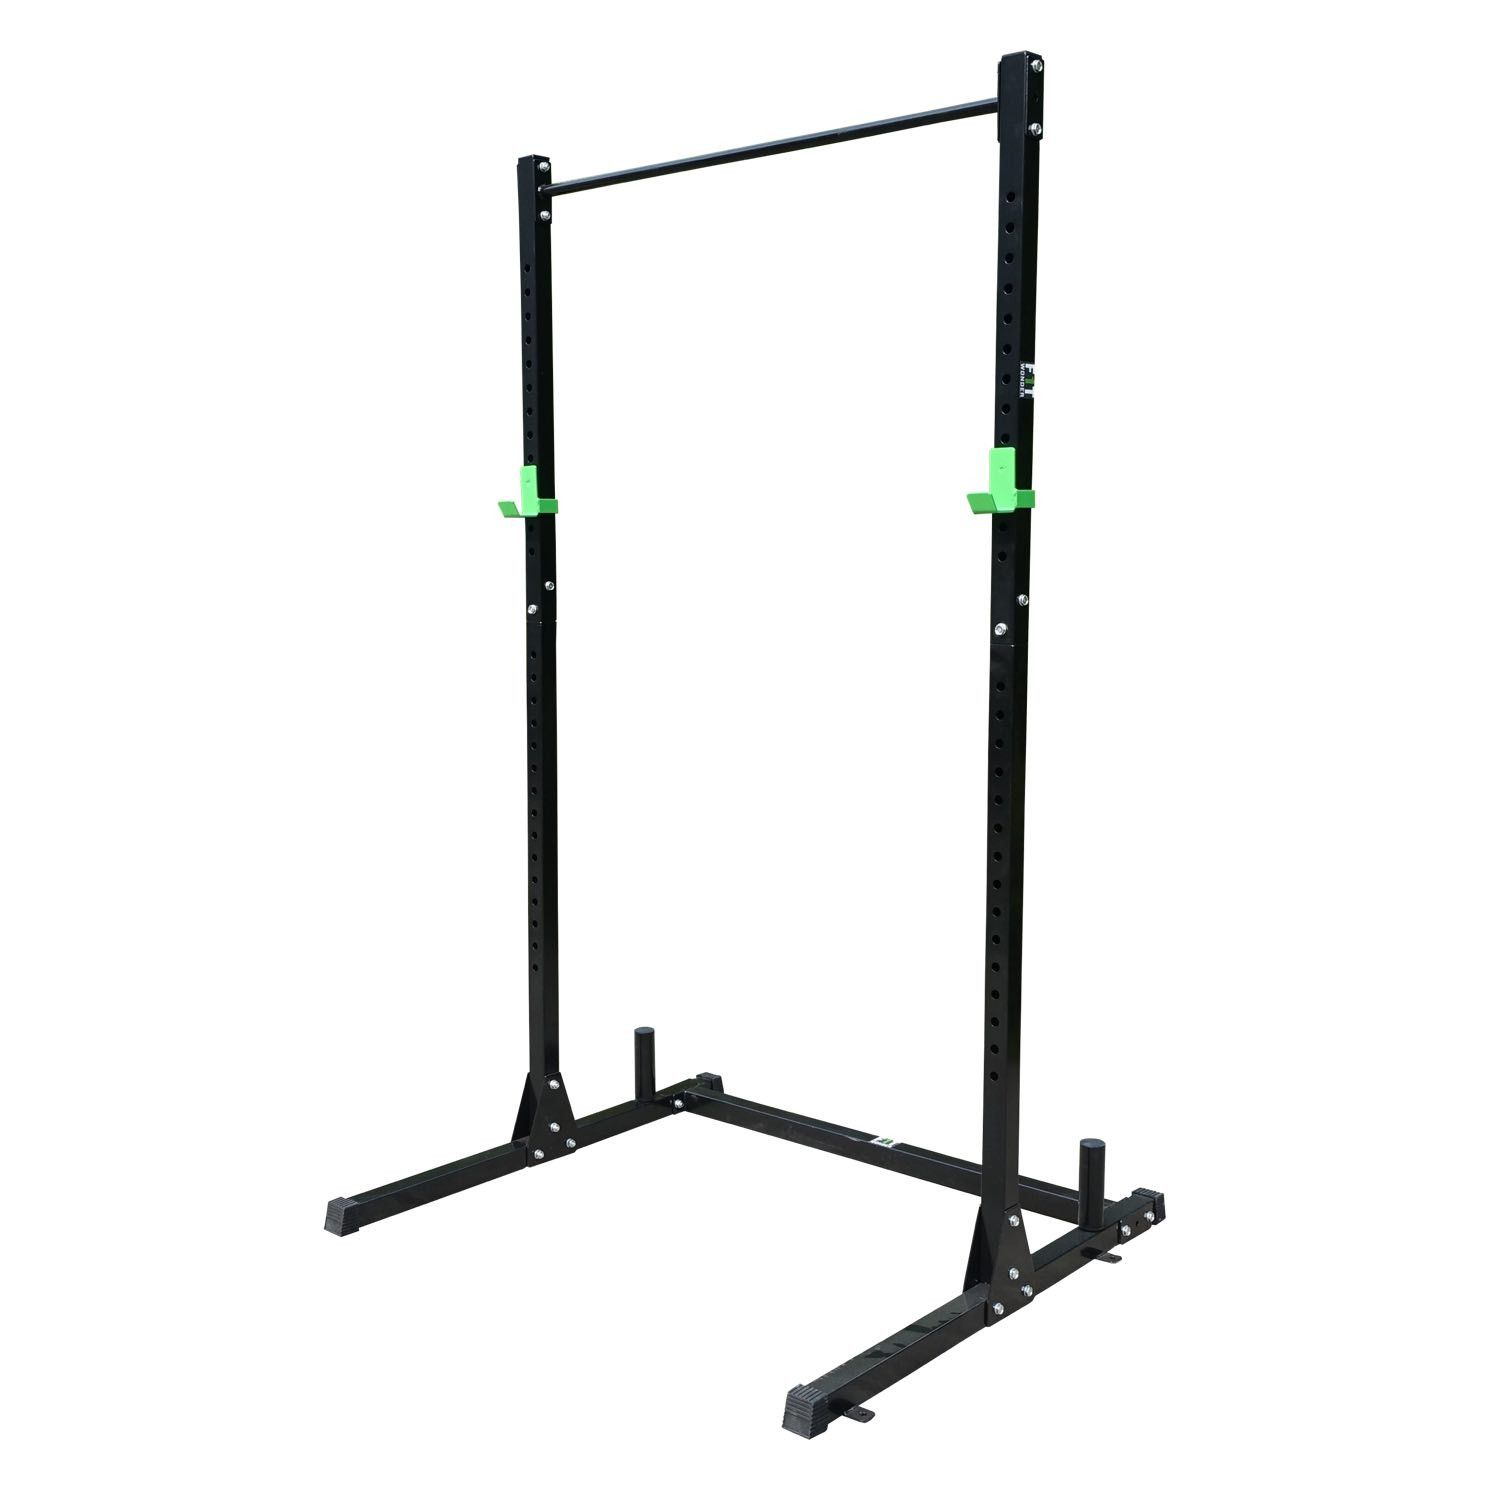 763e60e478ae63c7cbf788d8e47c1d98 Top Result 50 Unique Portable Pull Up Bar